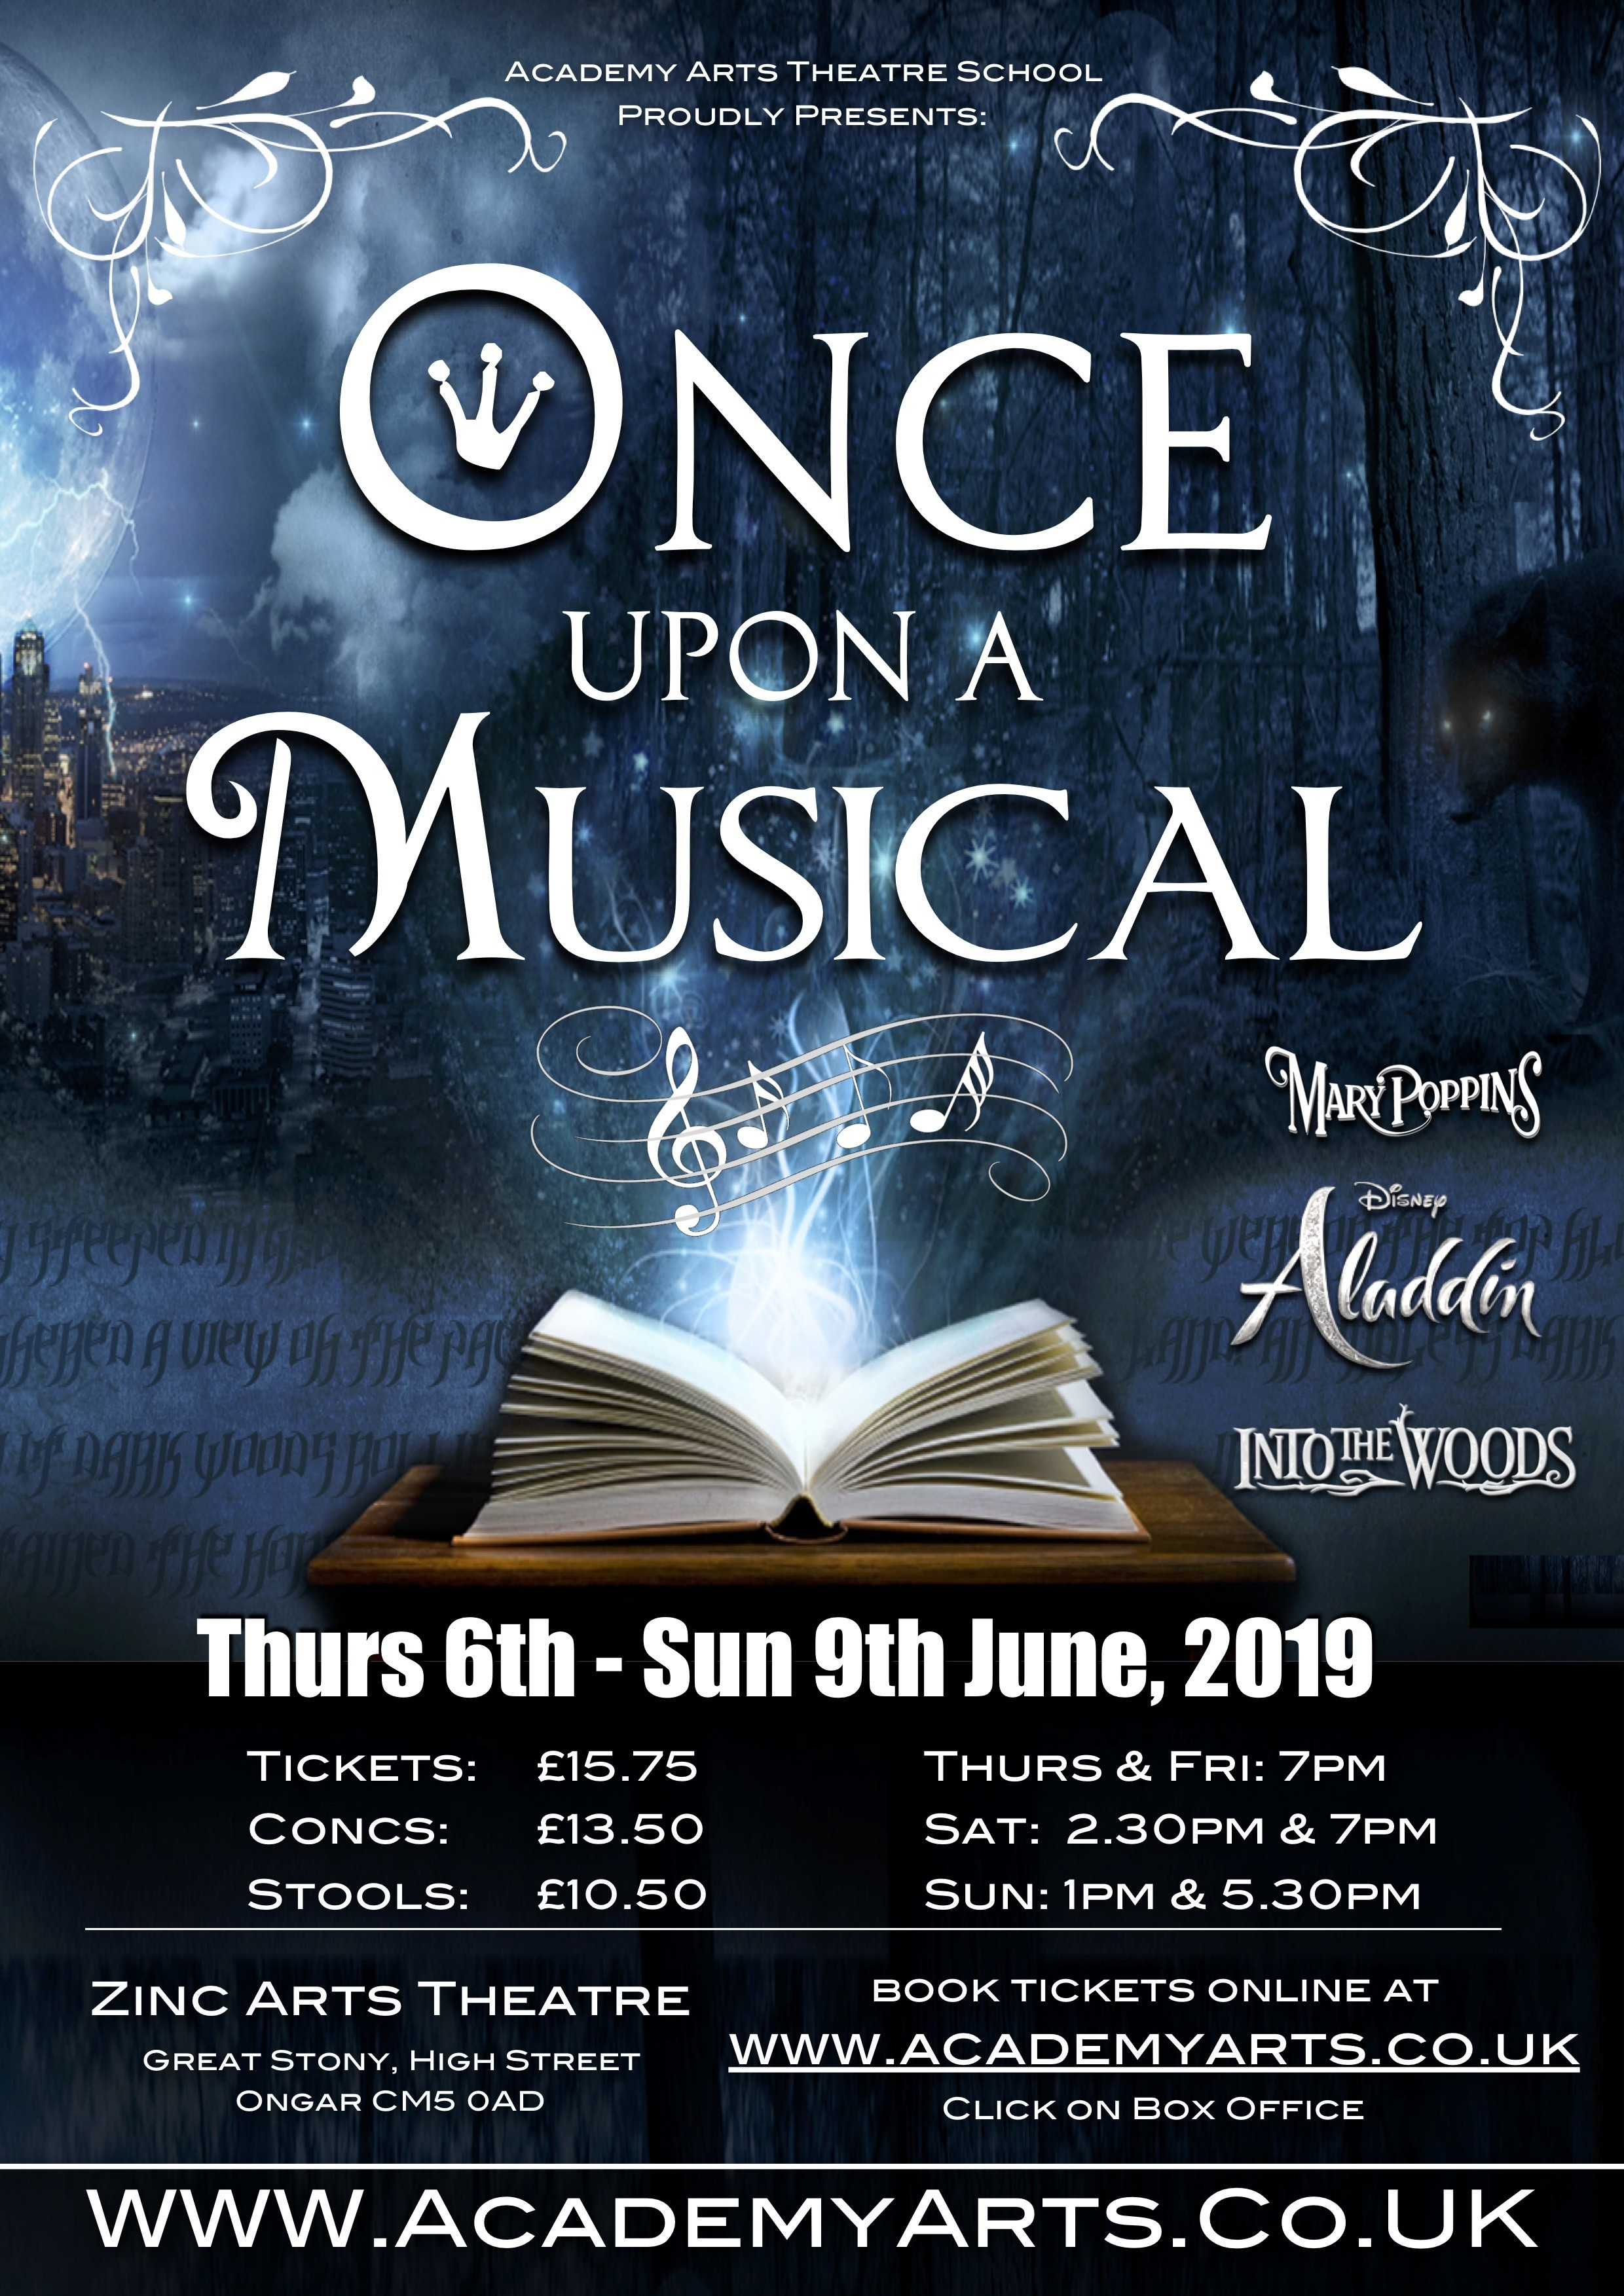 Once Upon a Musical